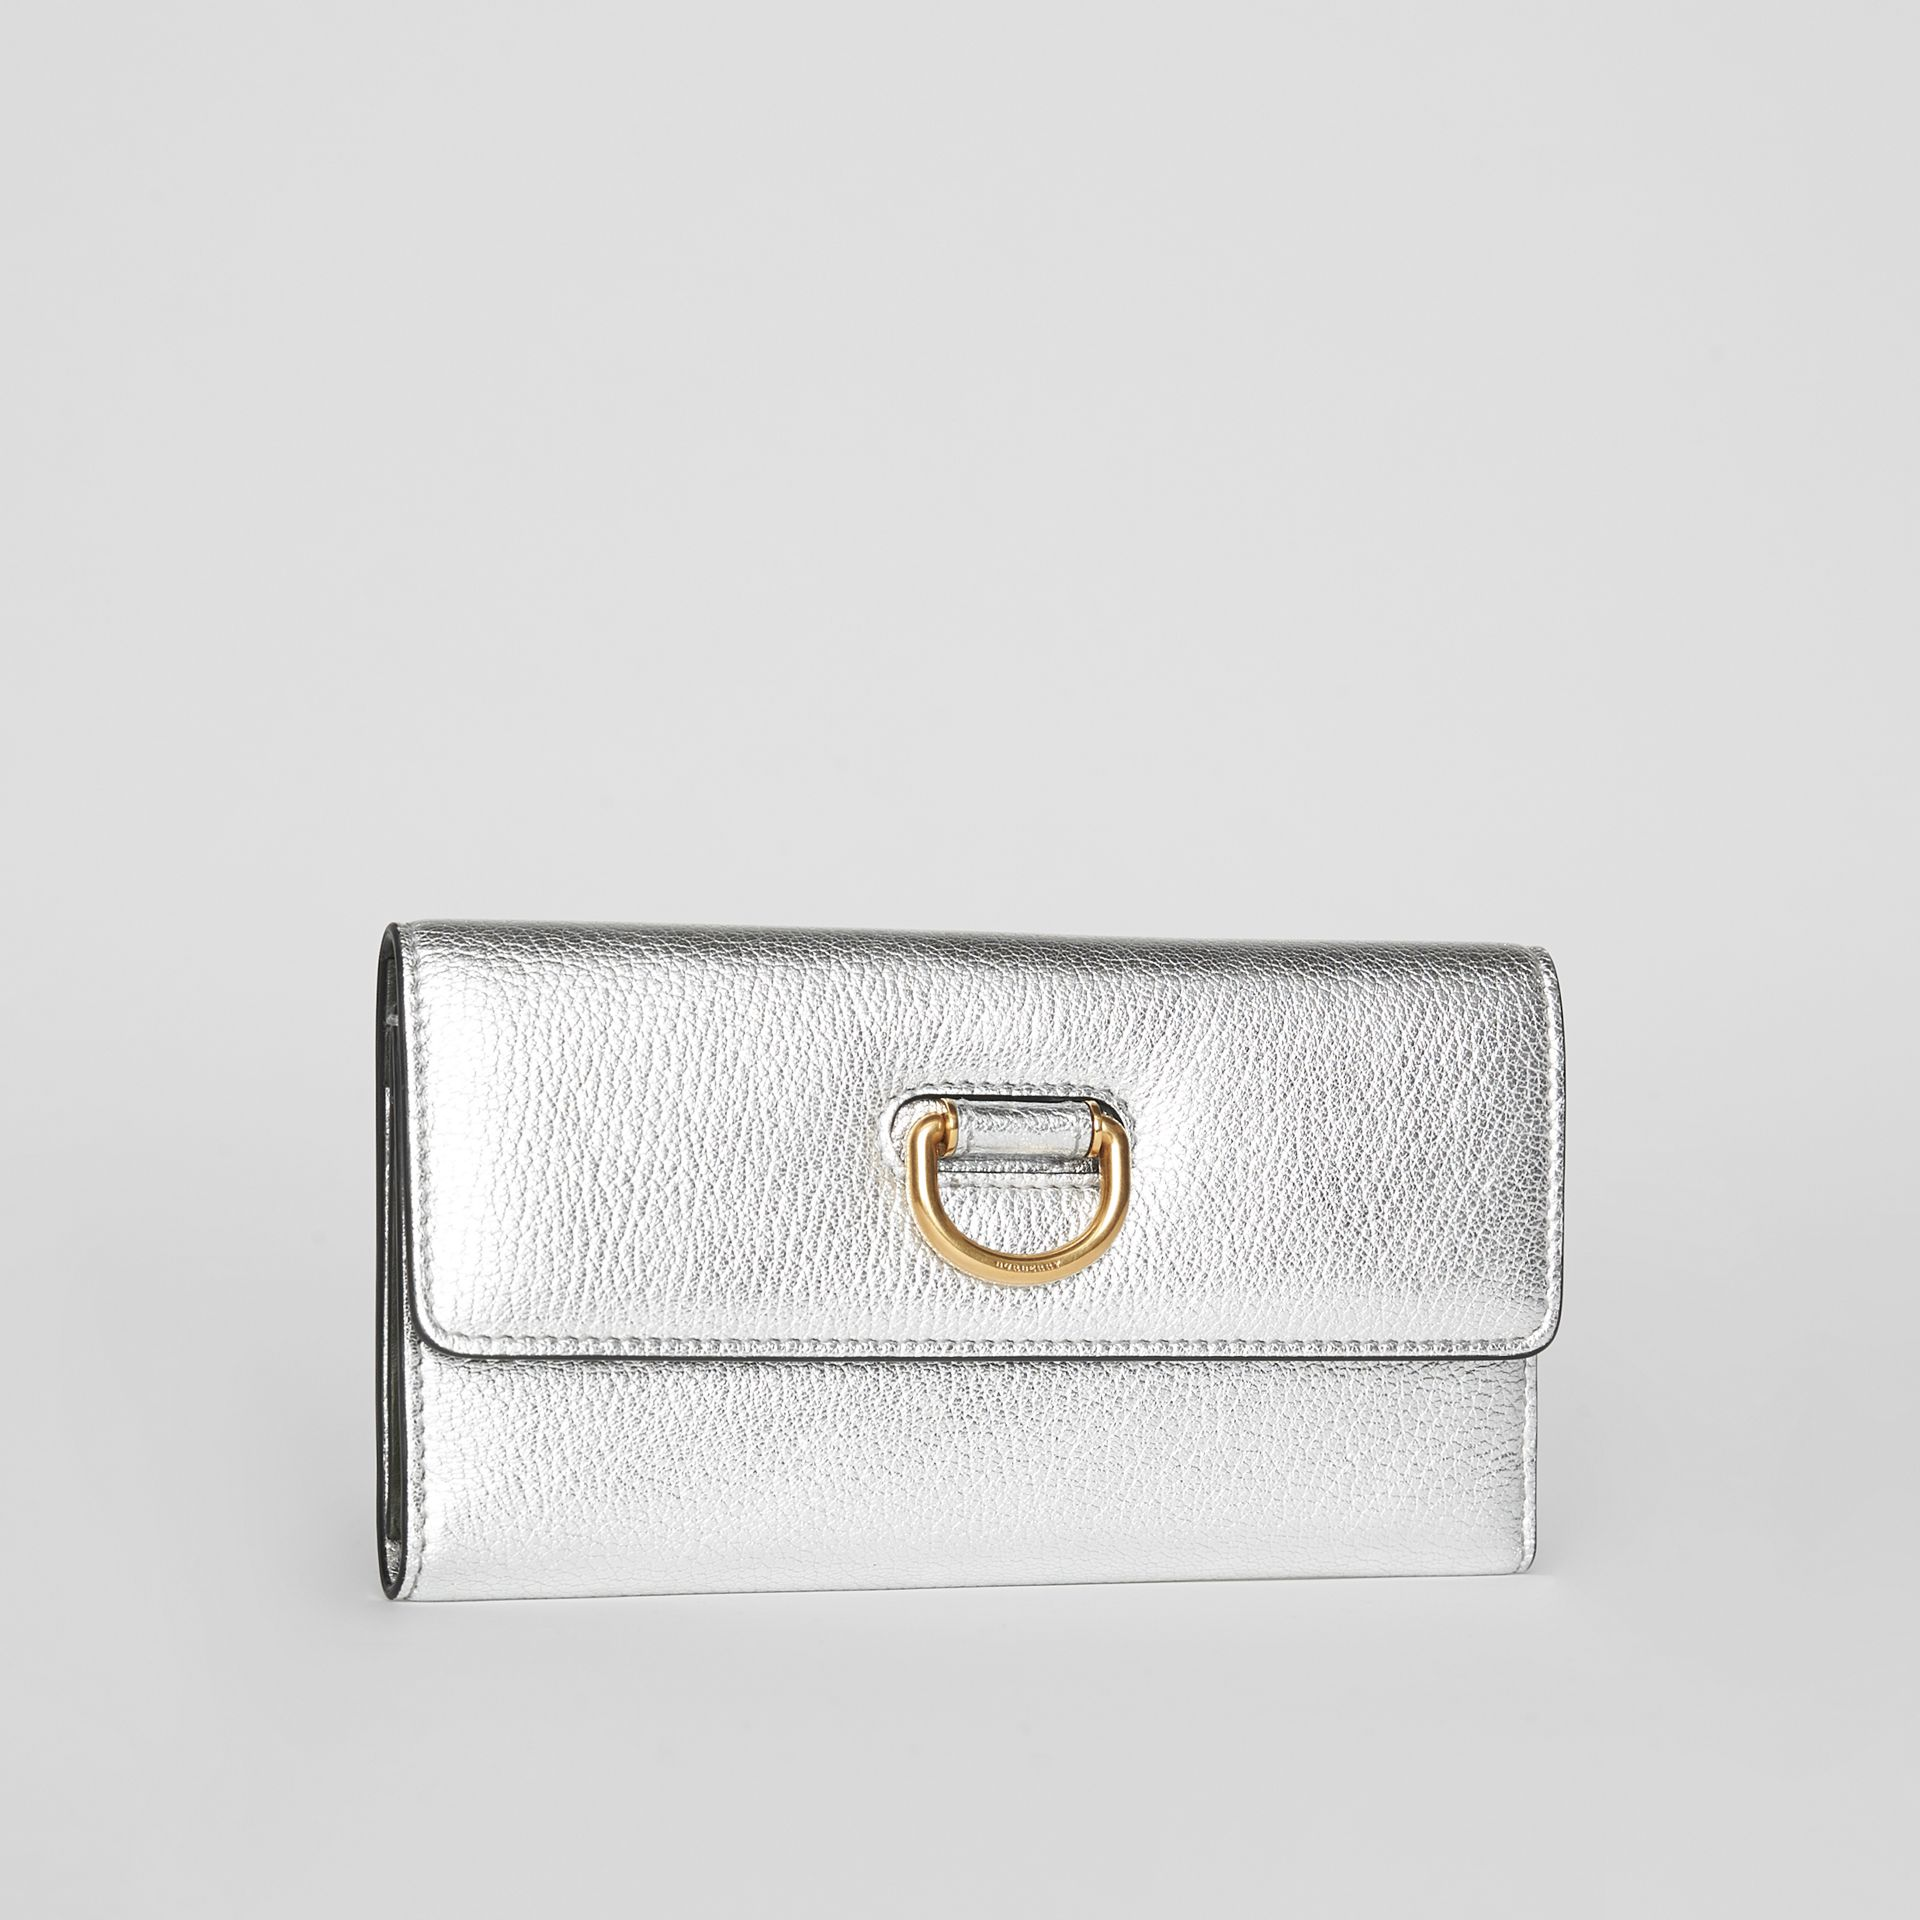 D-ring Metallic Leather Continental Wallet in Silver - Women | Burberry - gallery image 4